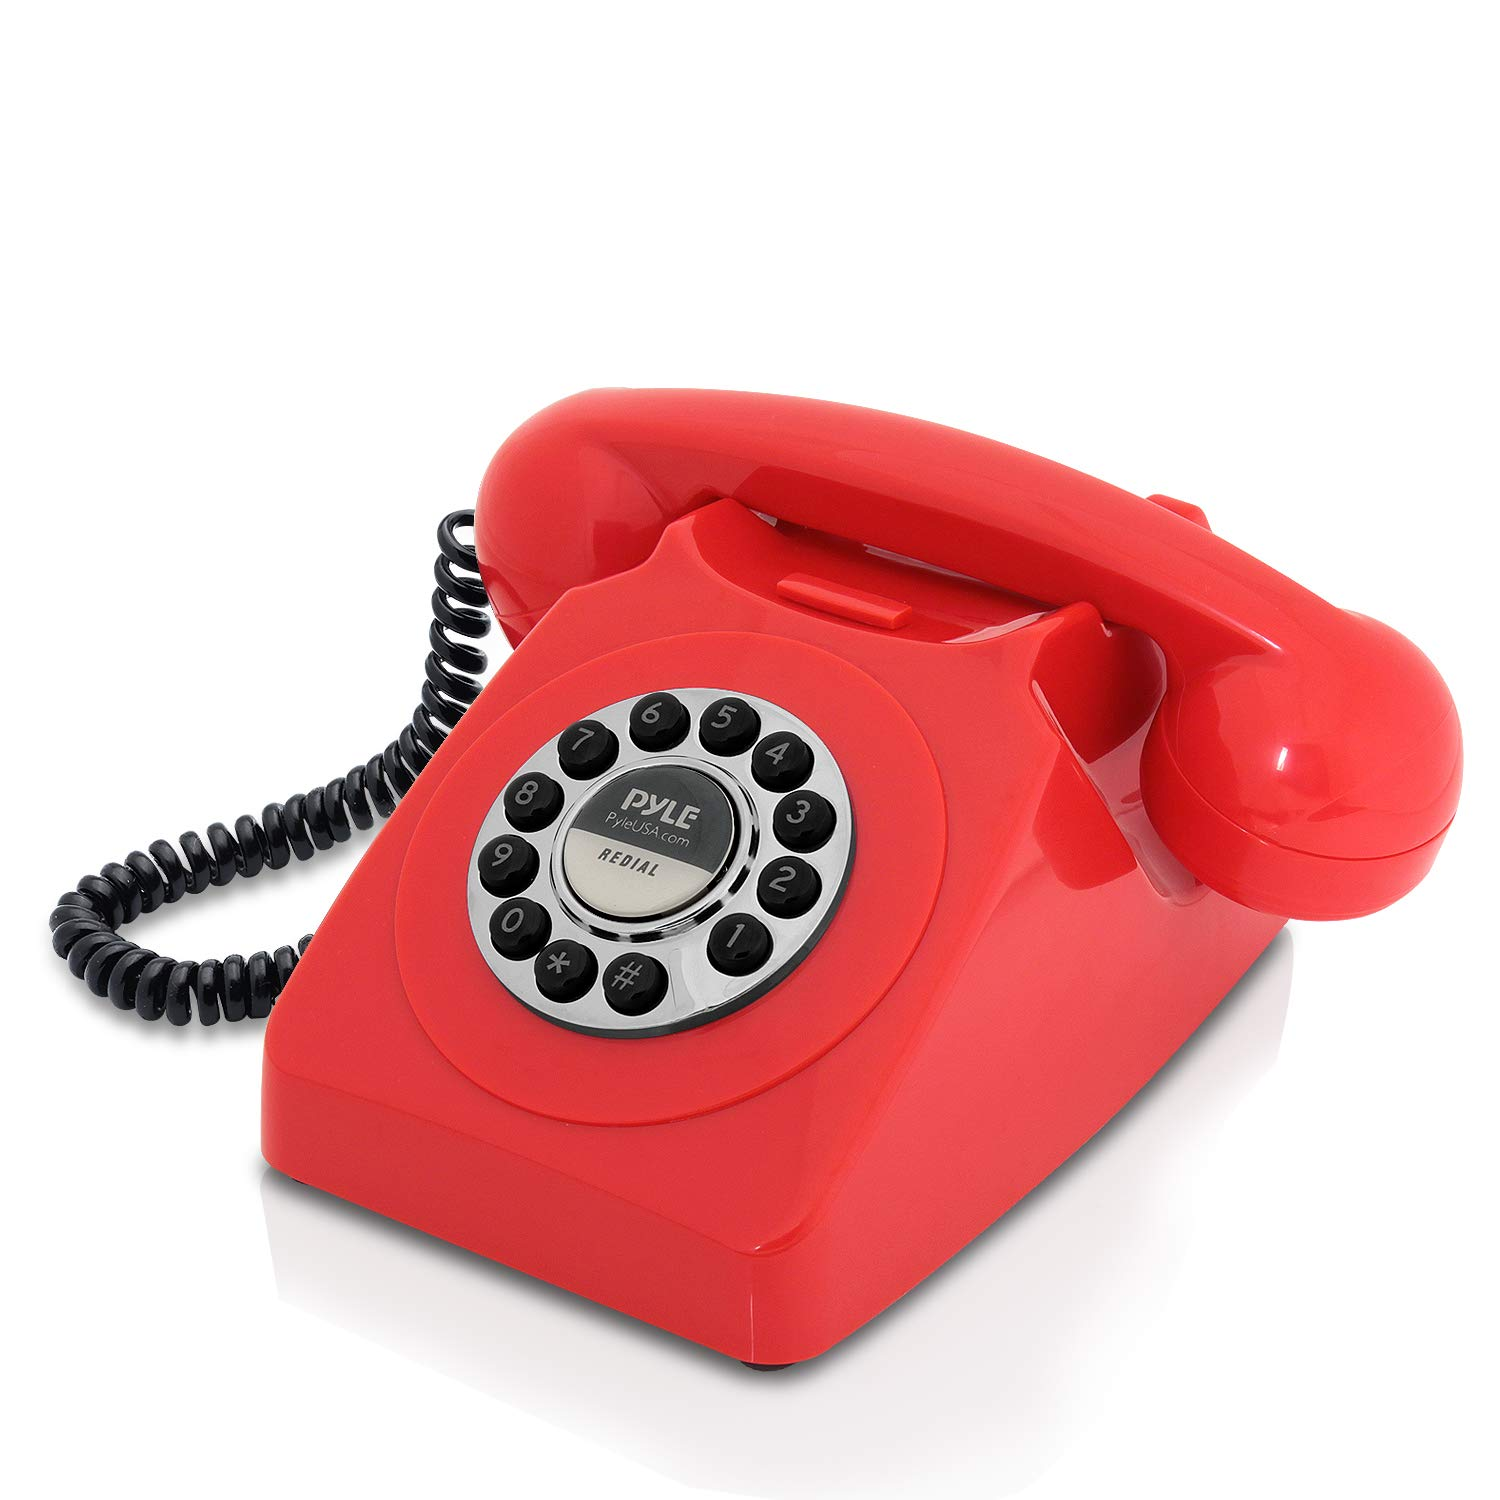 Retro Design Corded Landline Phone - Classic Vintage Old Fashioned Rotary Dial Style Desk Table Home Office Coiled Cord Handset w/ Button Dialing, Standard Telephone Jack - Pyle PPRETRO25RD (Red)